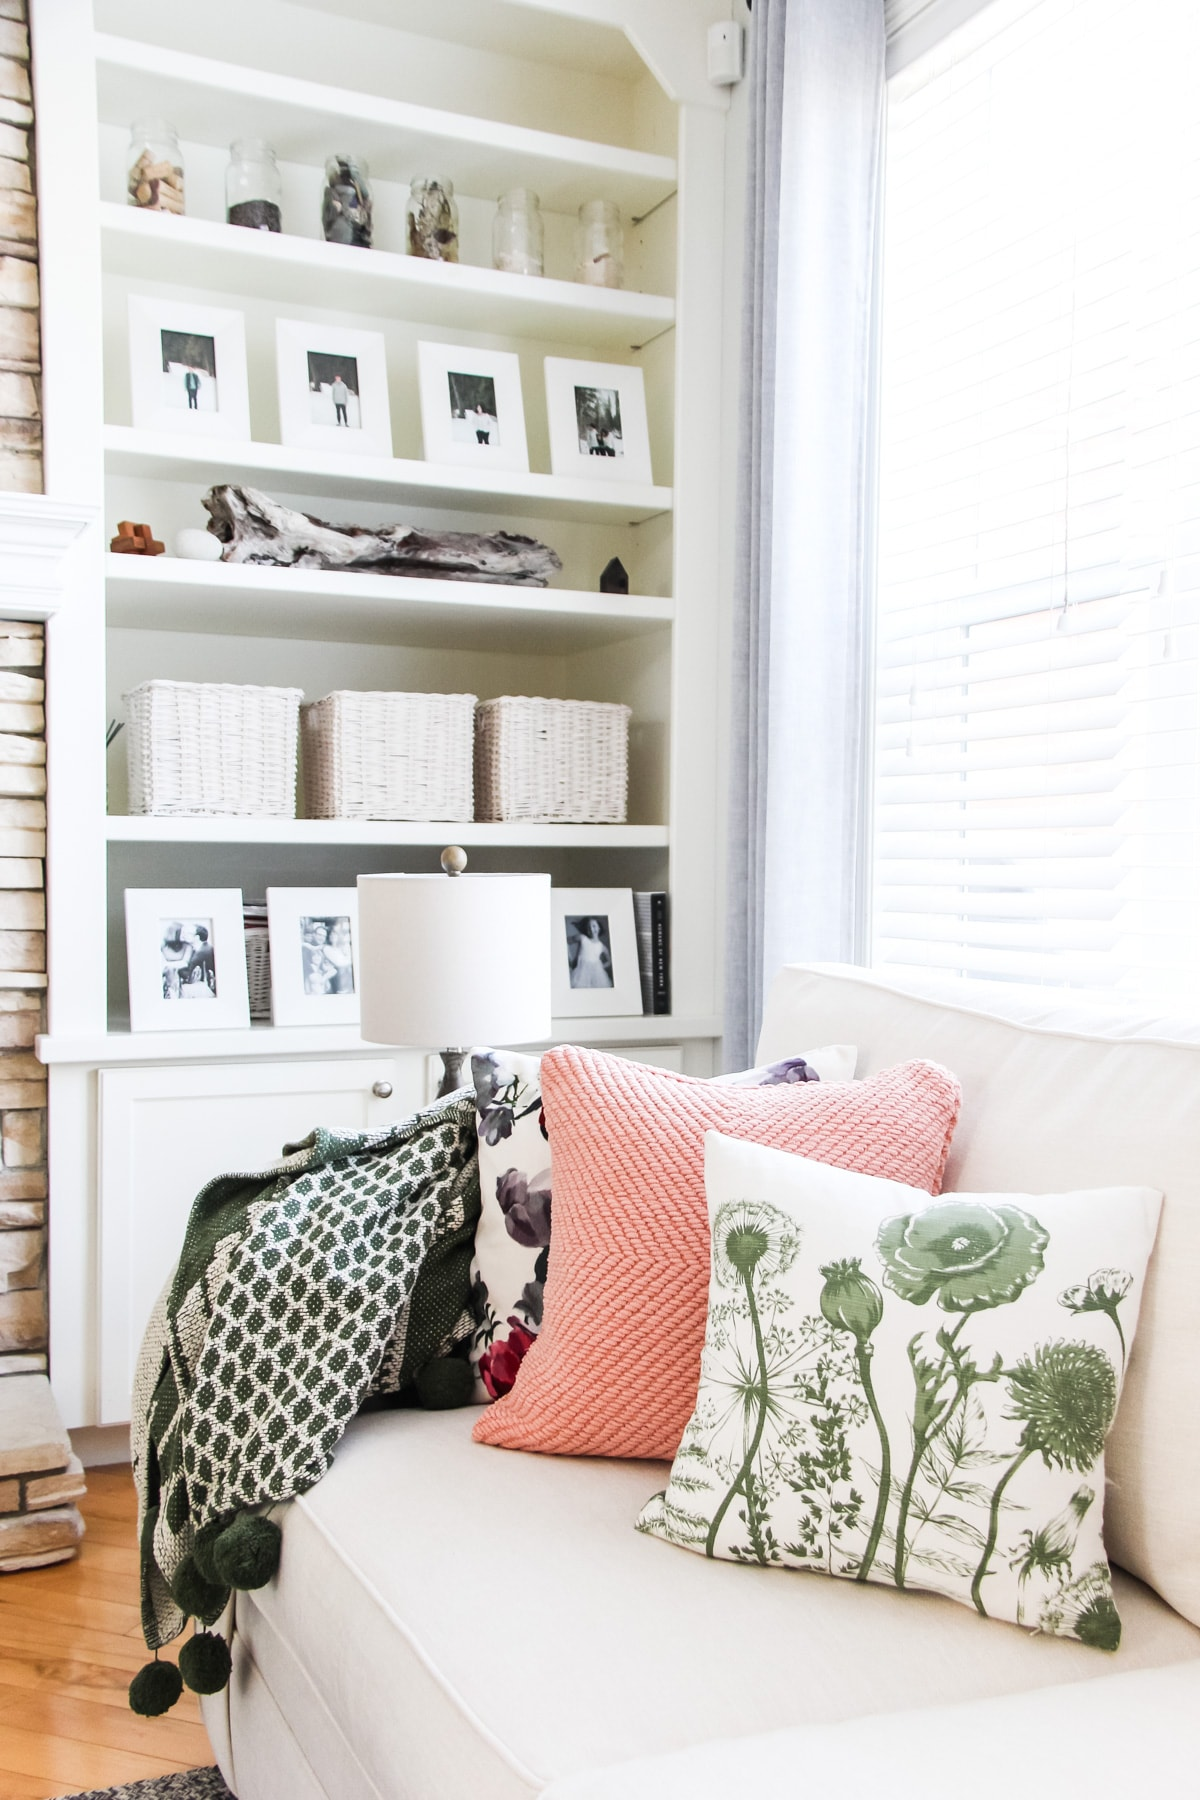 a picture of a white sectional couch in a living room with throw pillows and blankets. in the background is a stone fireplace and white bookcase shelving